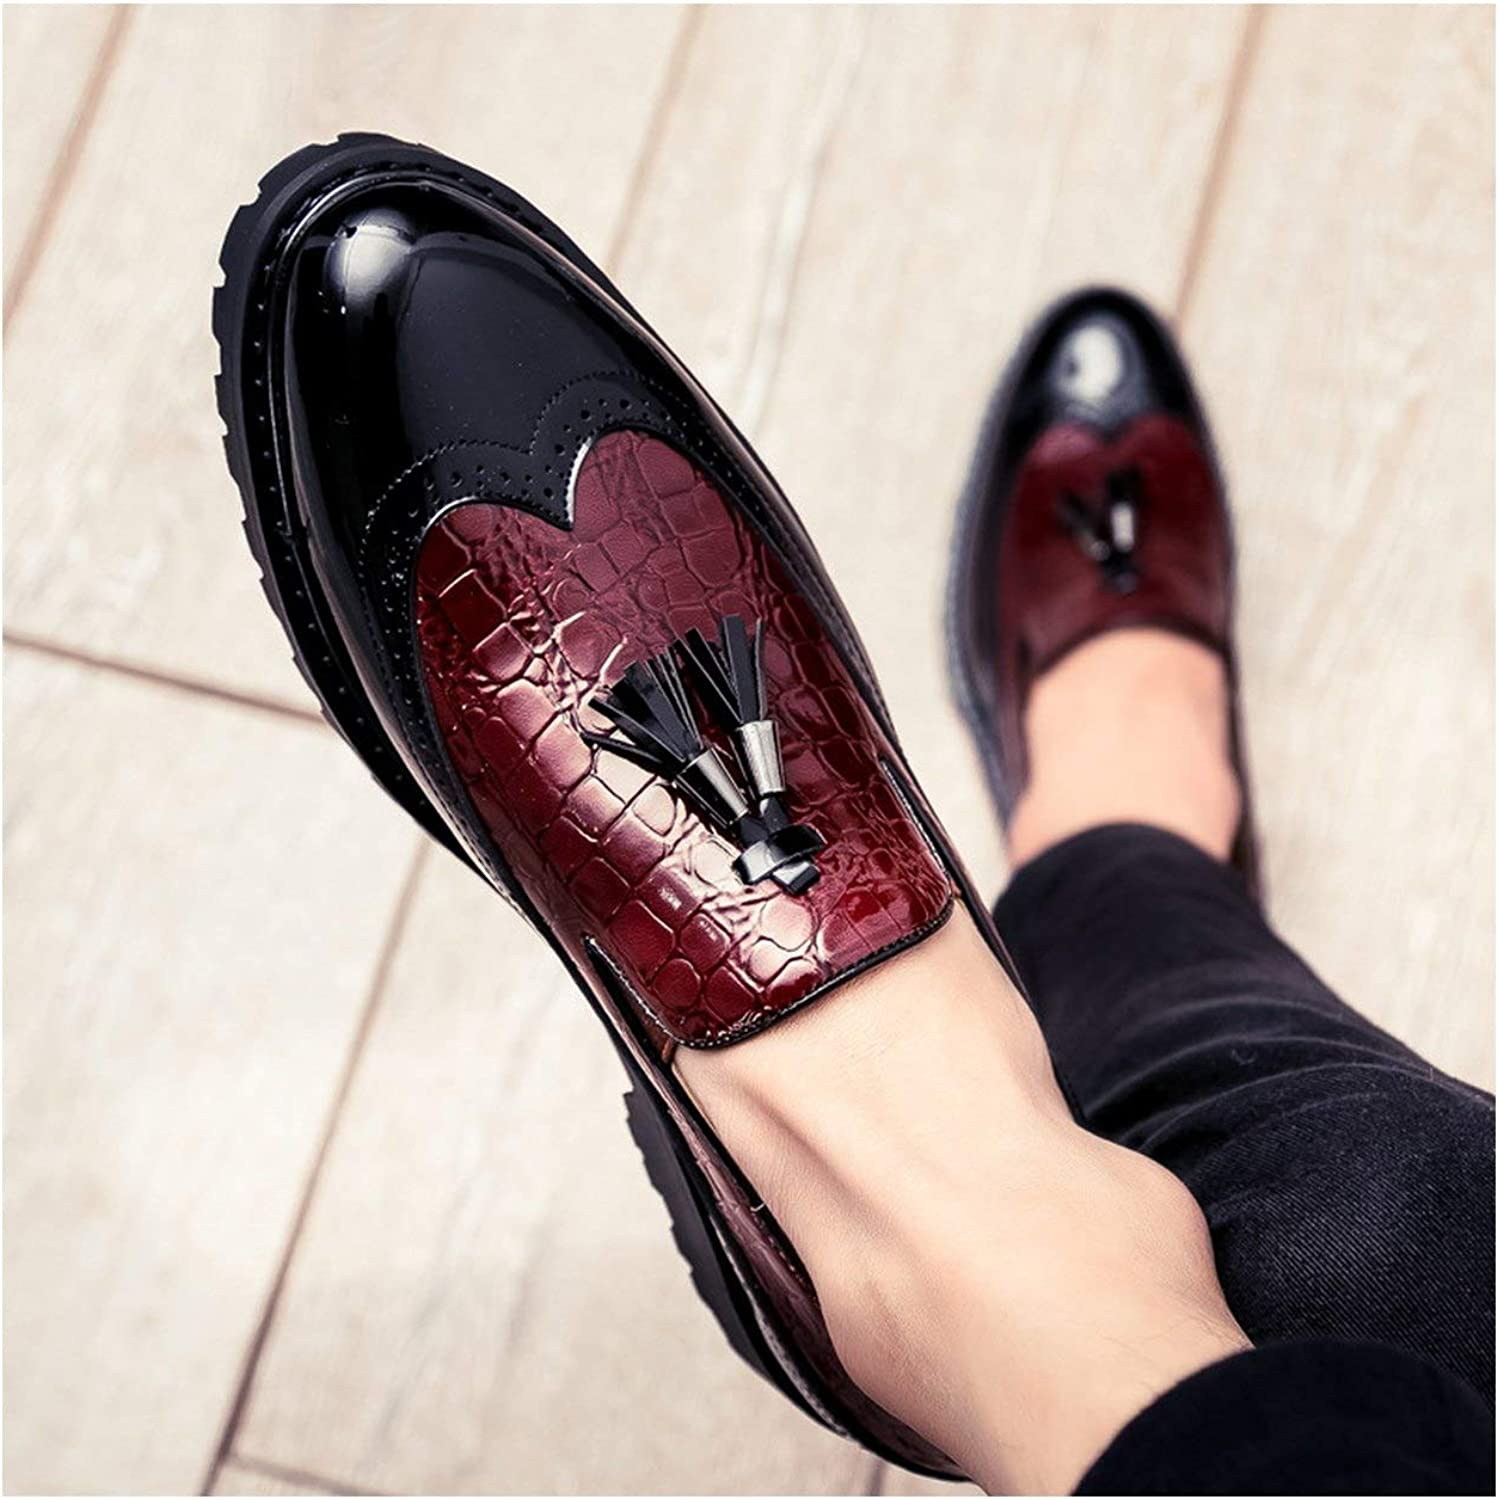 FJ-Direct 2019 Men Casual shoes Breathable Leather Loafers Office shoes for Men Driving Moccasins Comfortable Slip on Fashion shoes MA-23